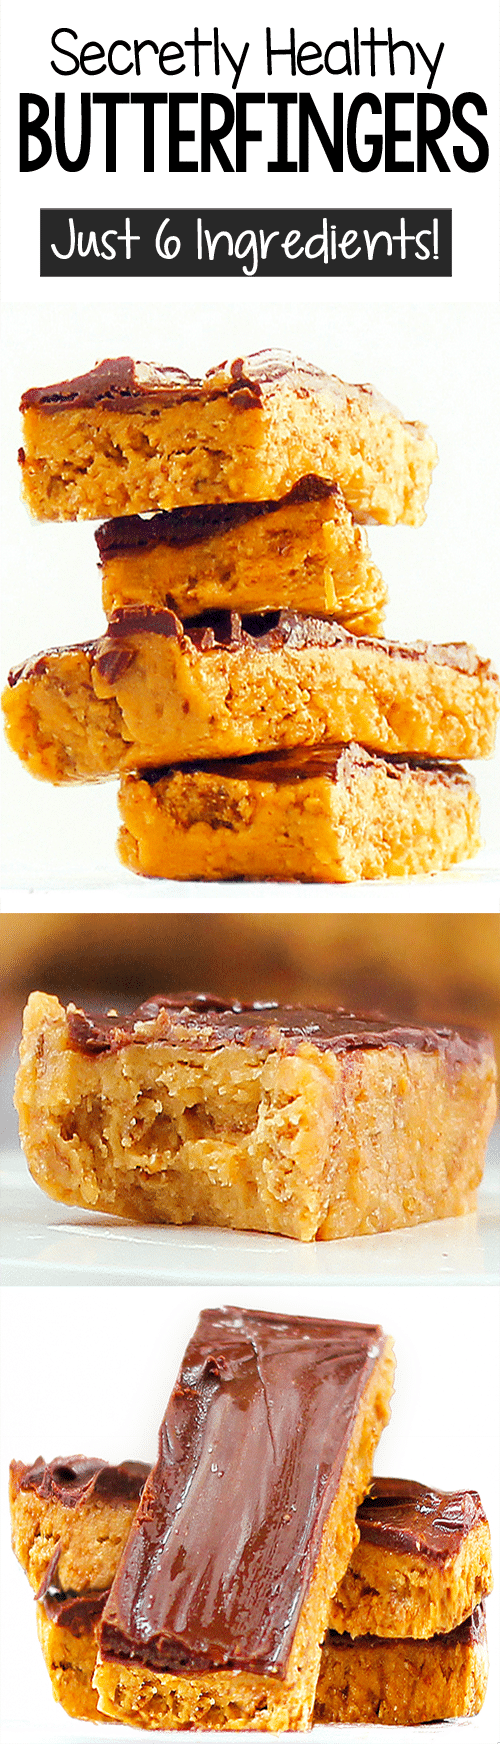 Secret Healthy Chocolate Butterfinger Candy Bar Recipe